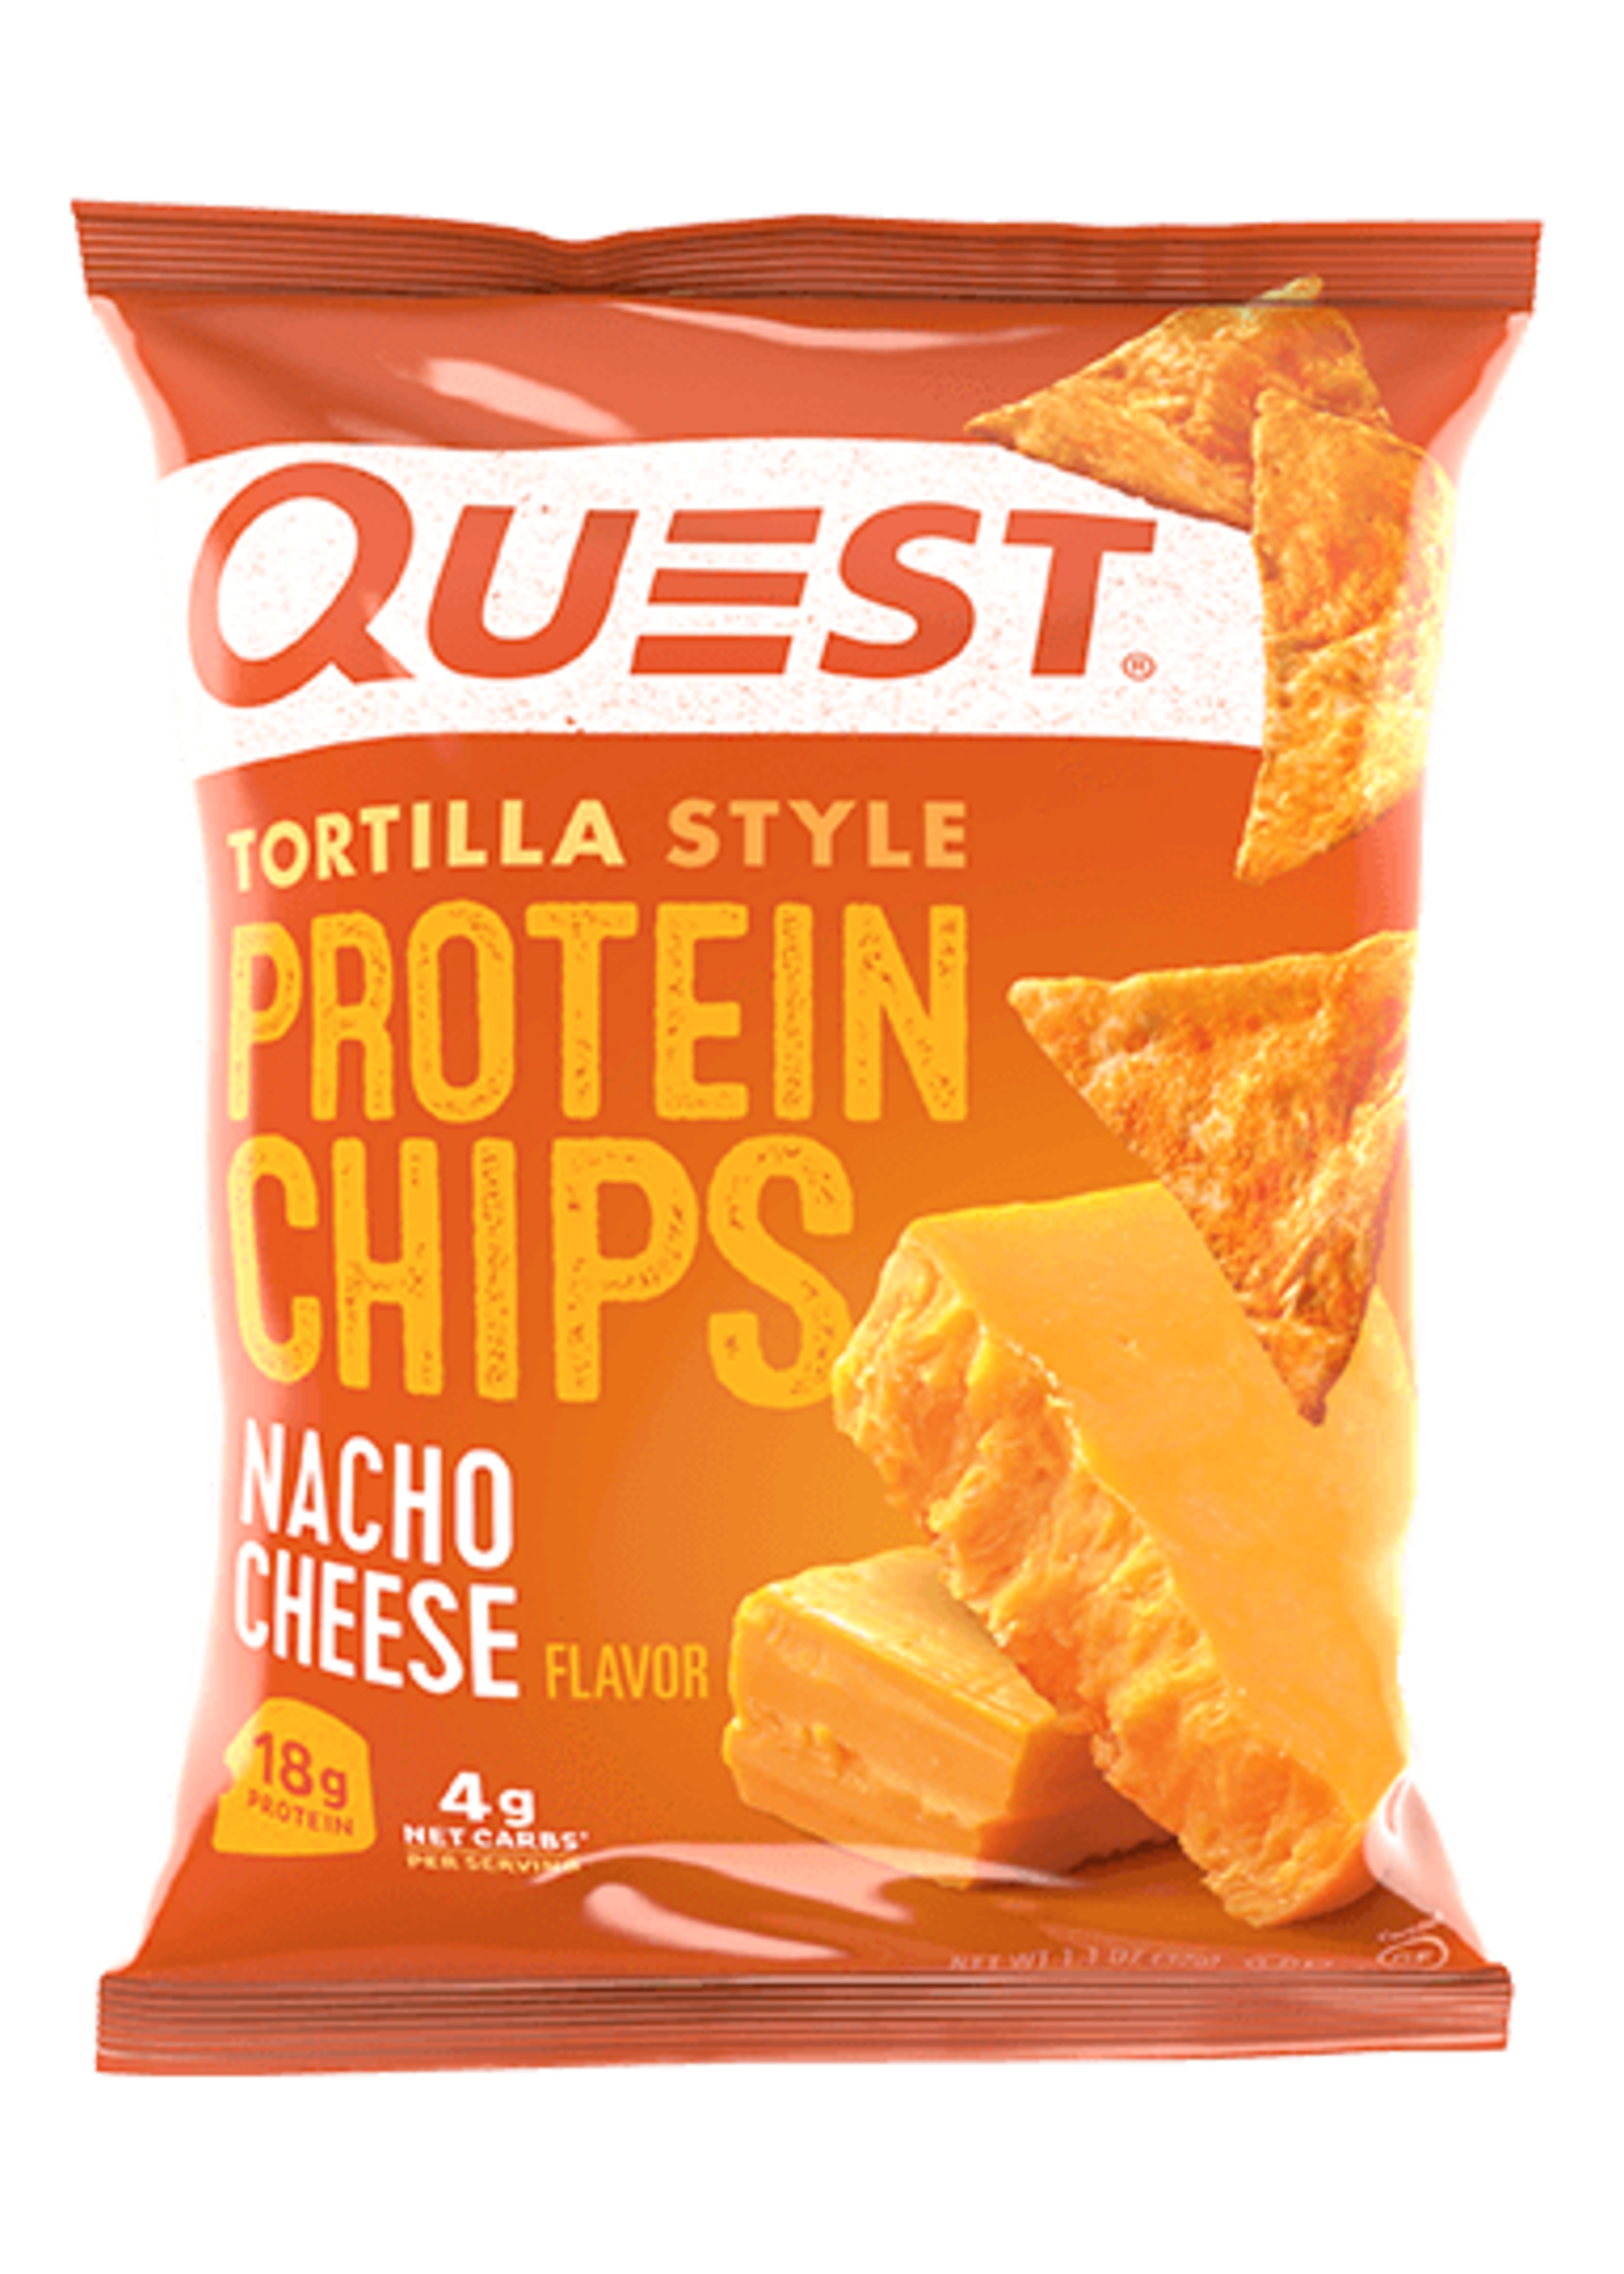 Quest Nutrition Quest Protein Tortilla Chips